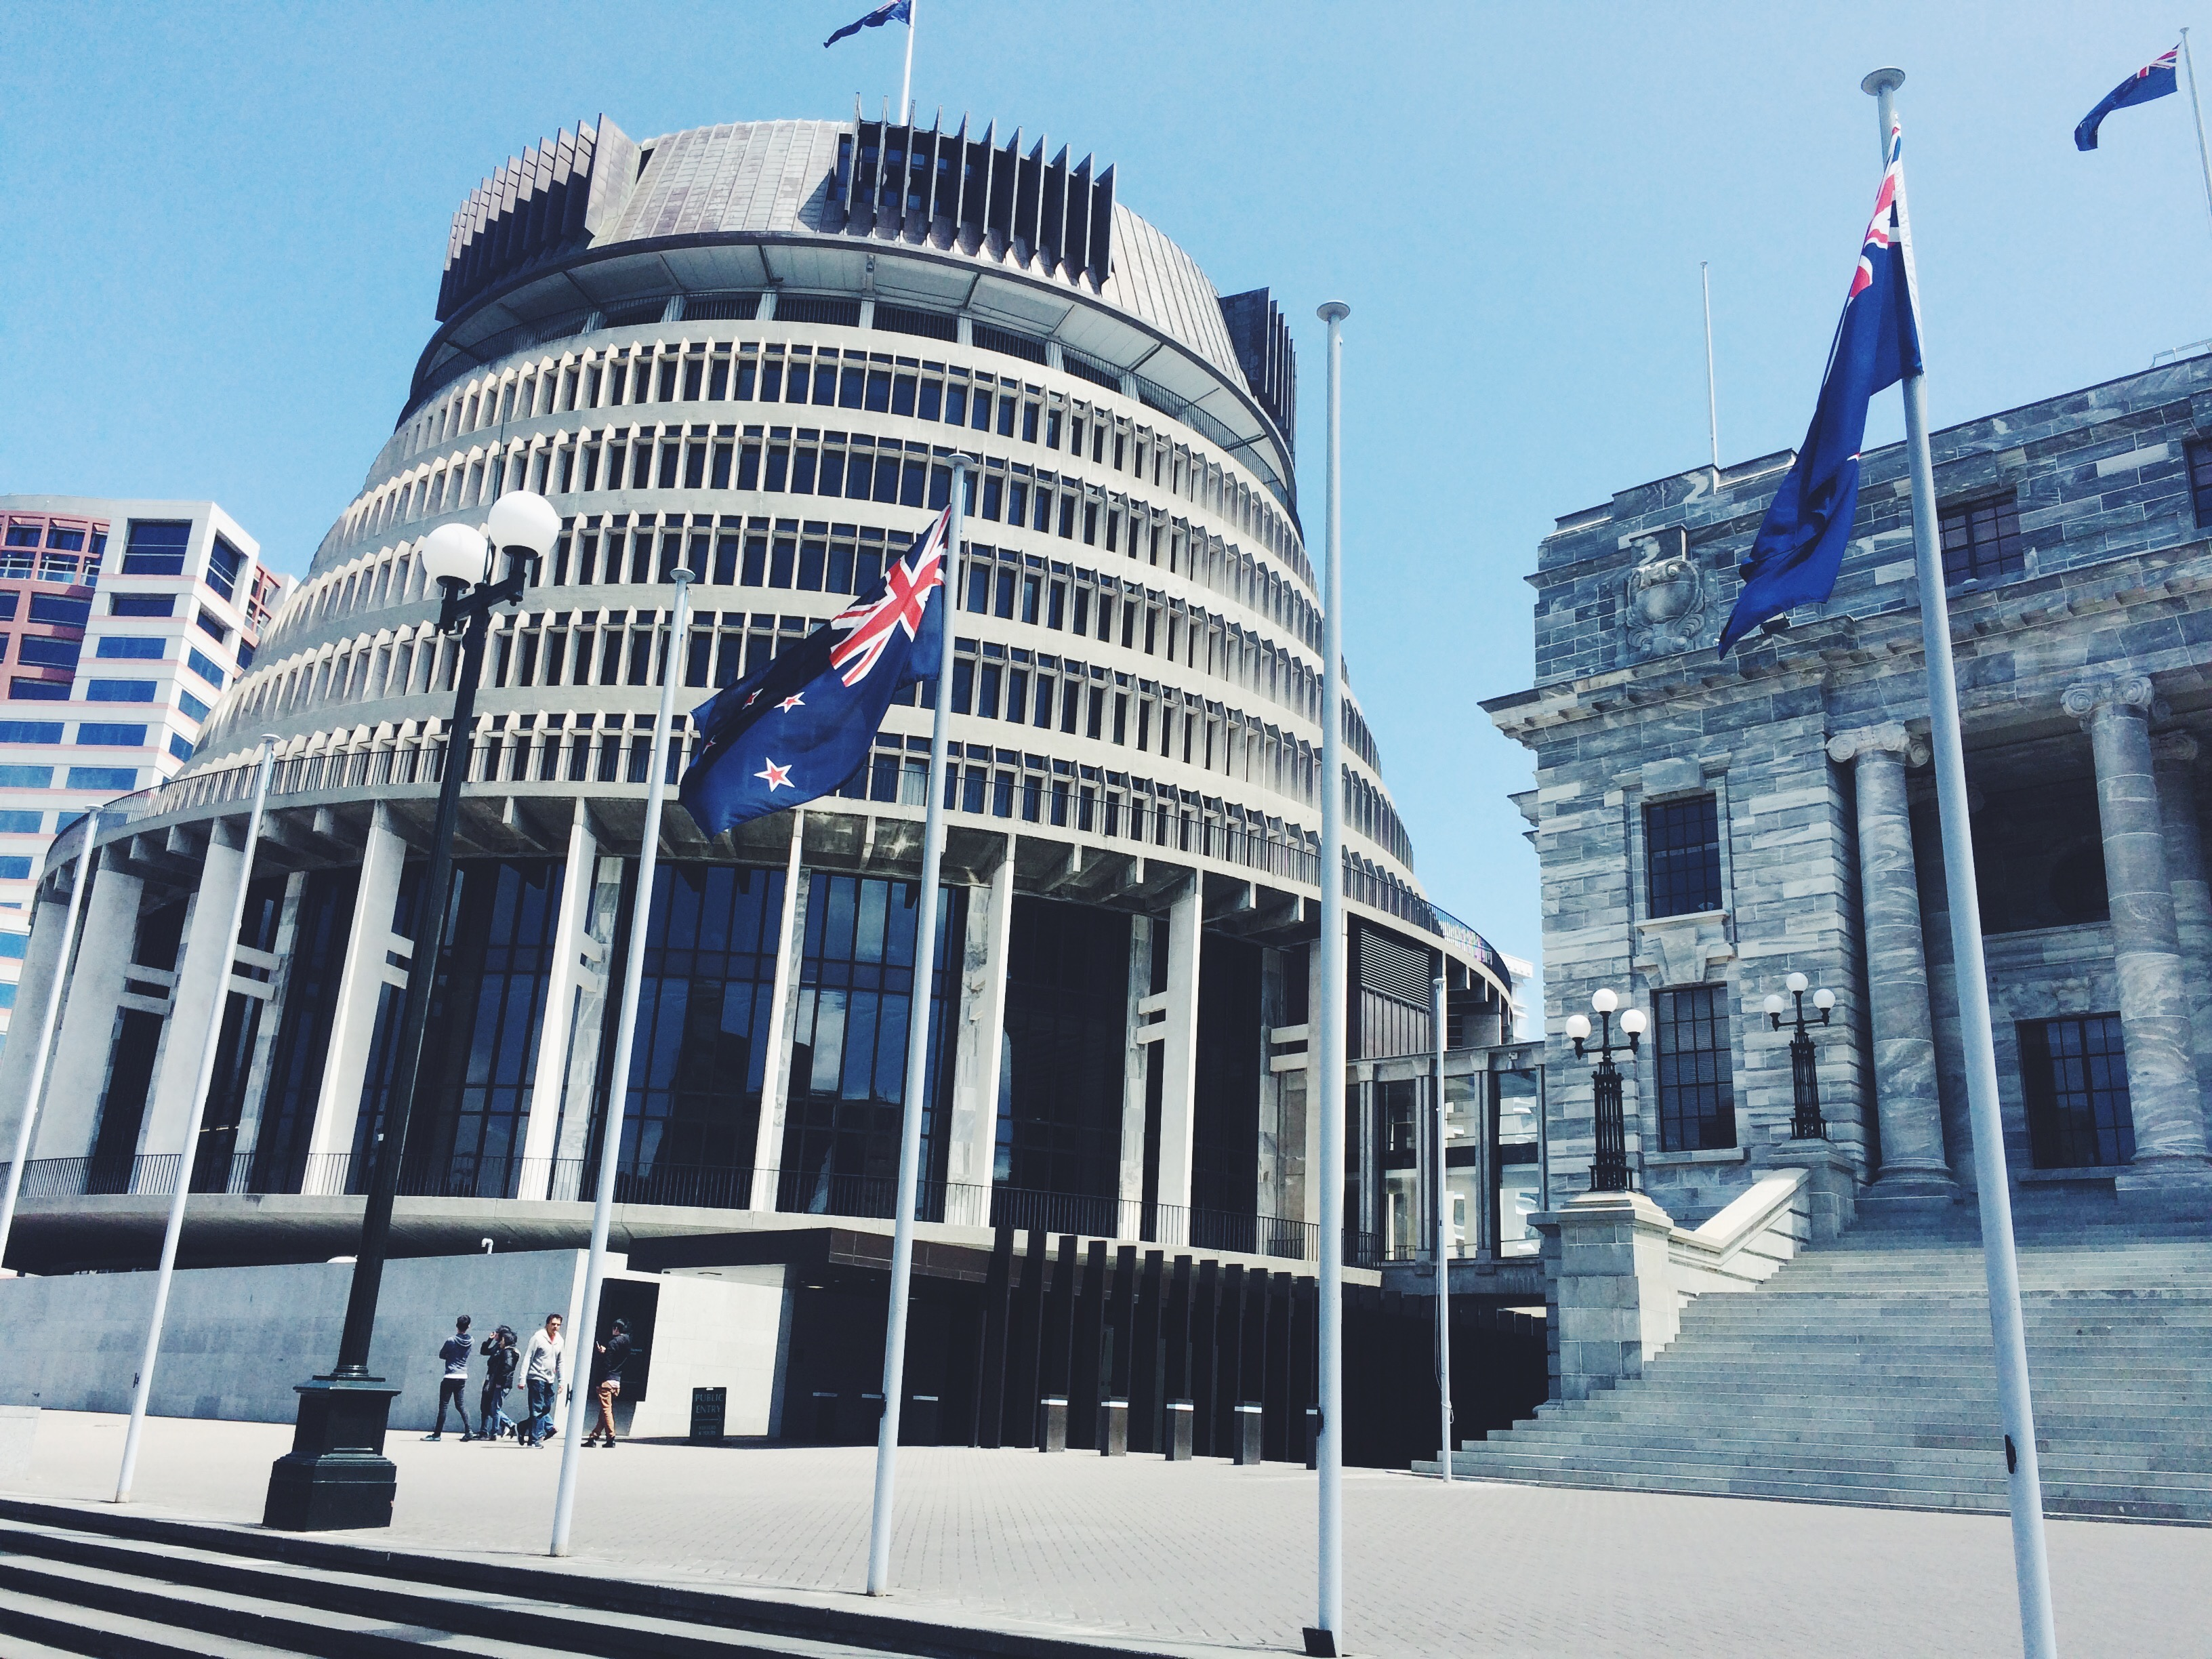 Parliament of Wellington